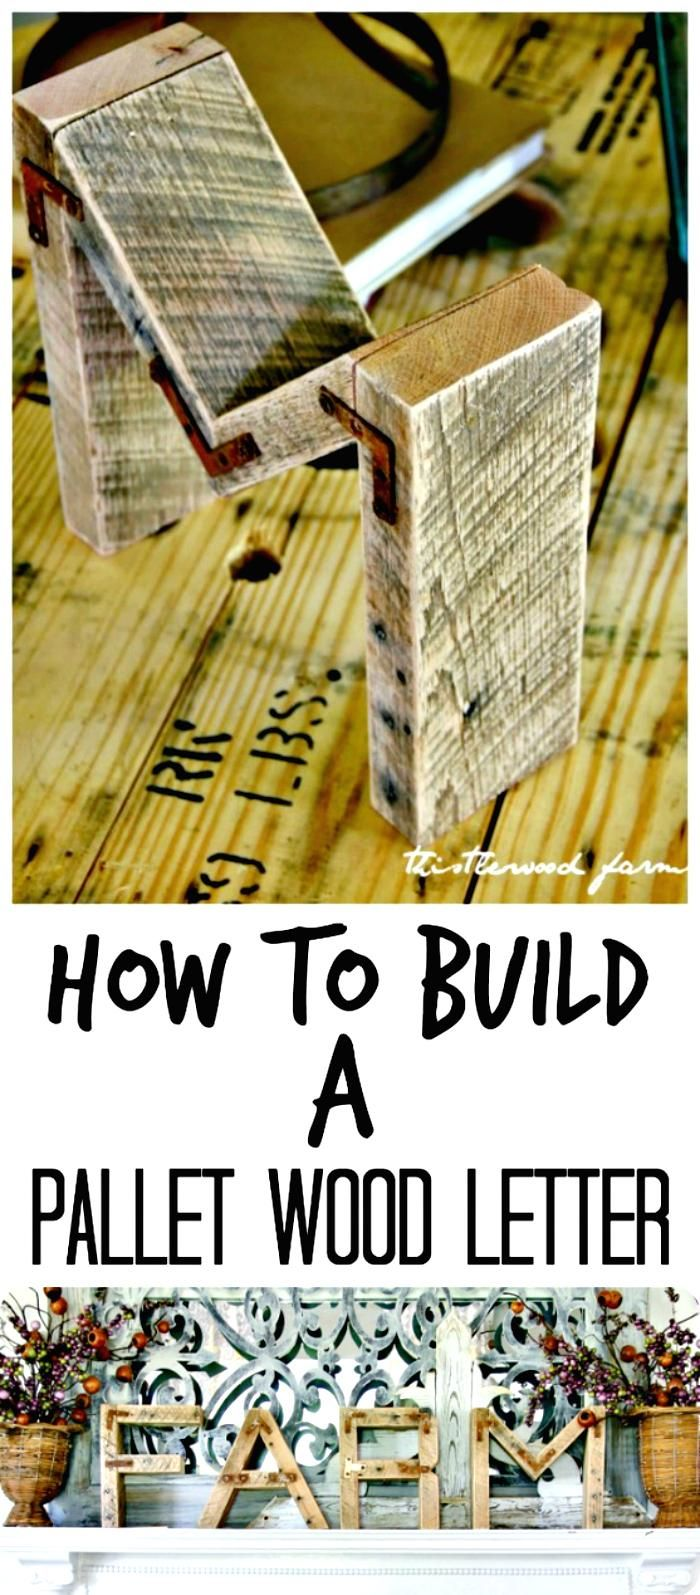 DIY Pallet Wood Letter Tutorial - 150 Best DIY Pallet Projects and Pallet Furniture Crafts - Page 58 of 75 - DIY & Crafts